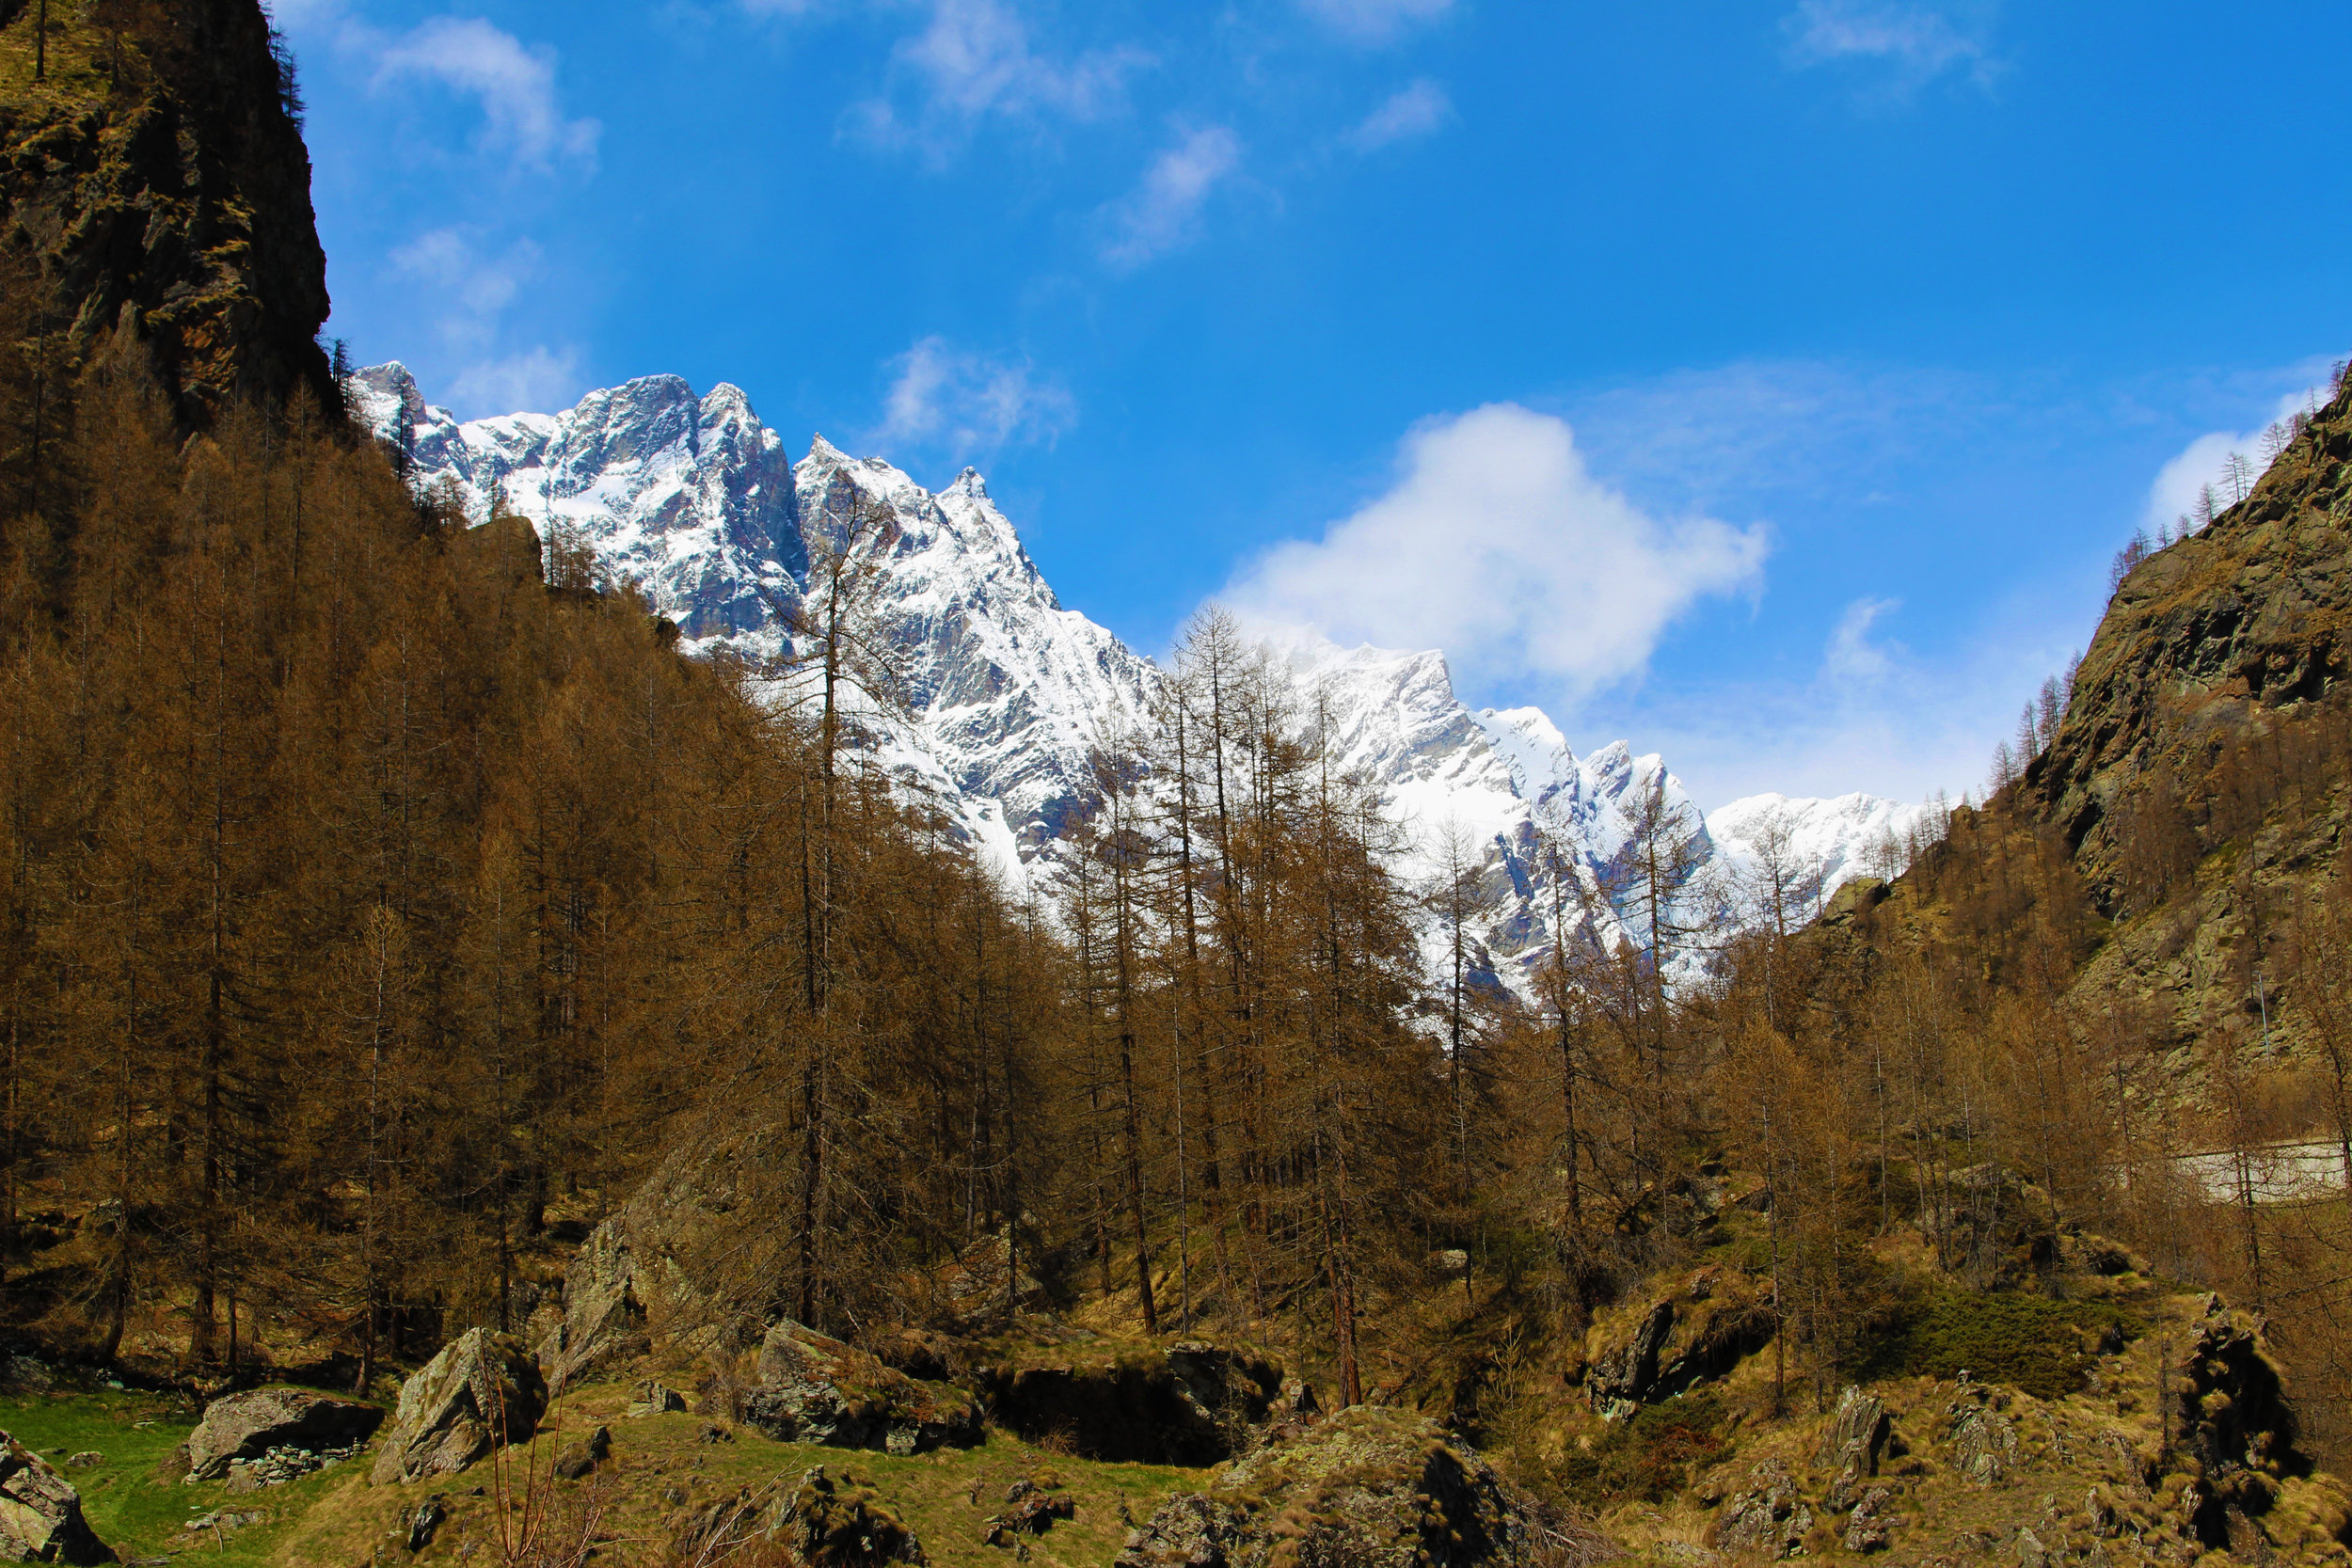 The Mountains of Breuil Cervinia.